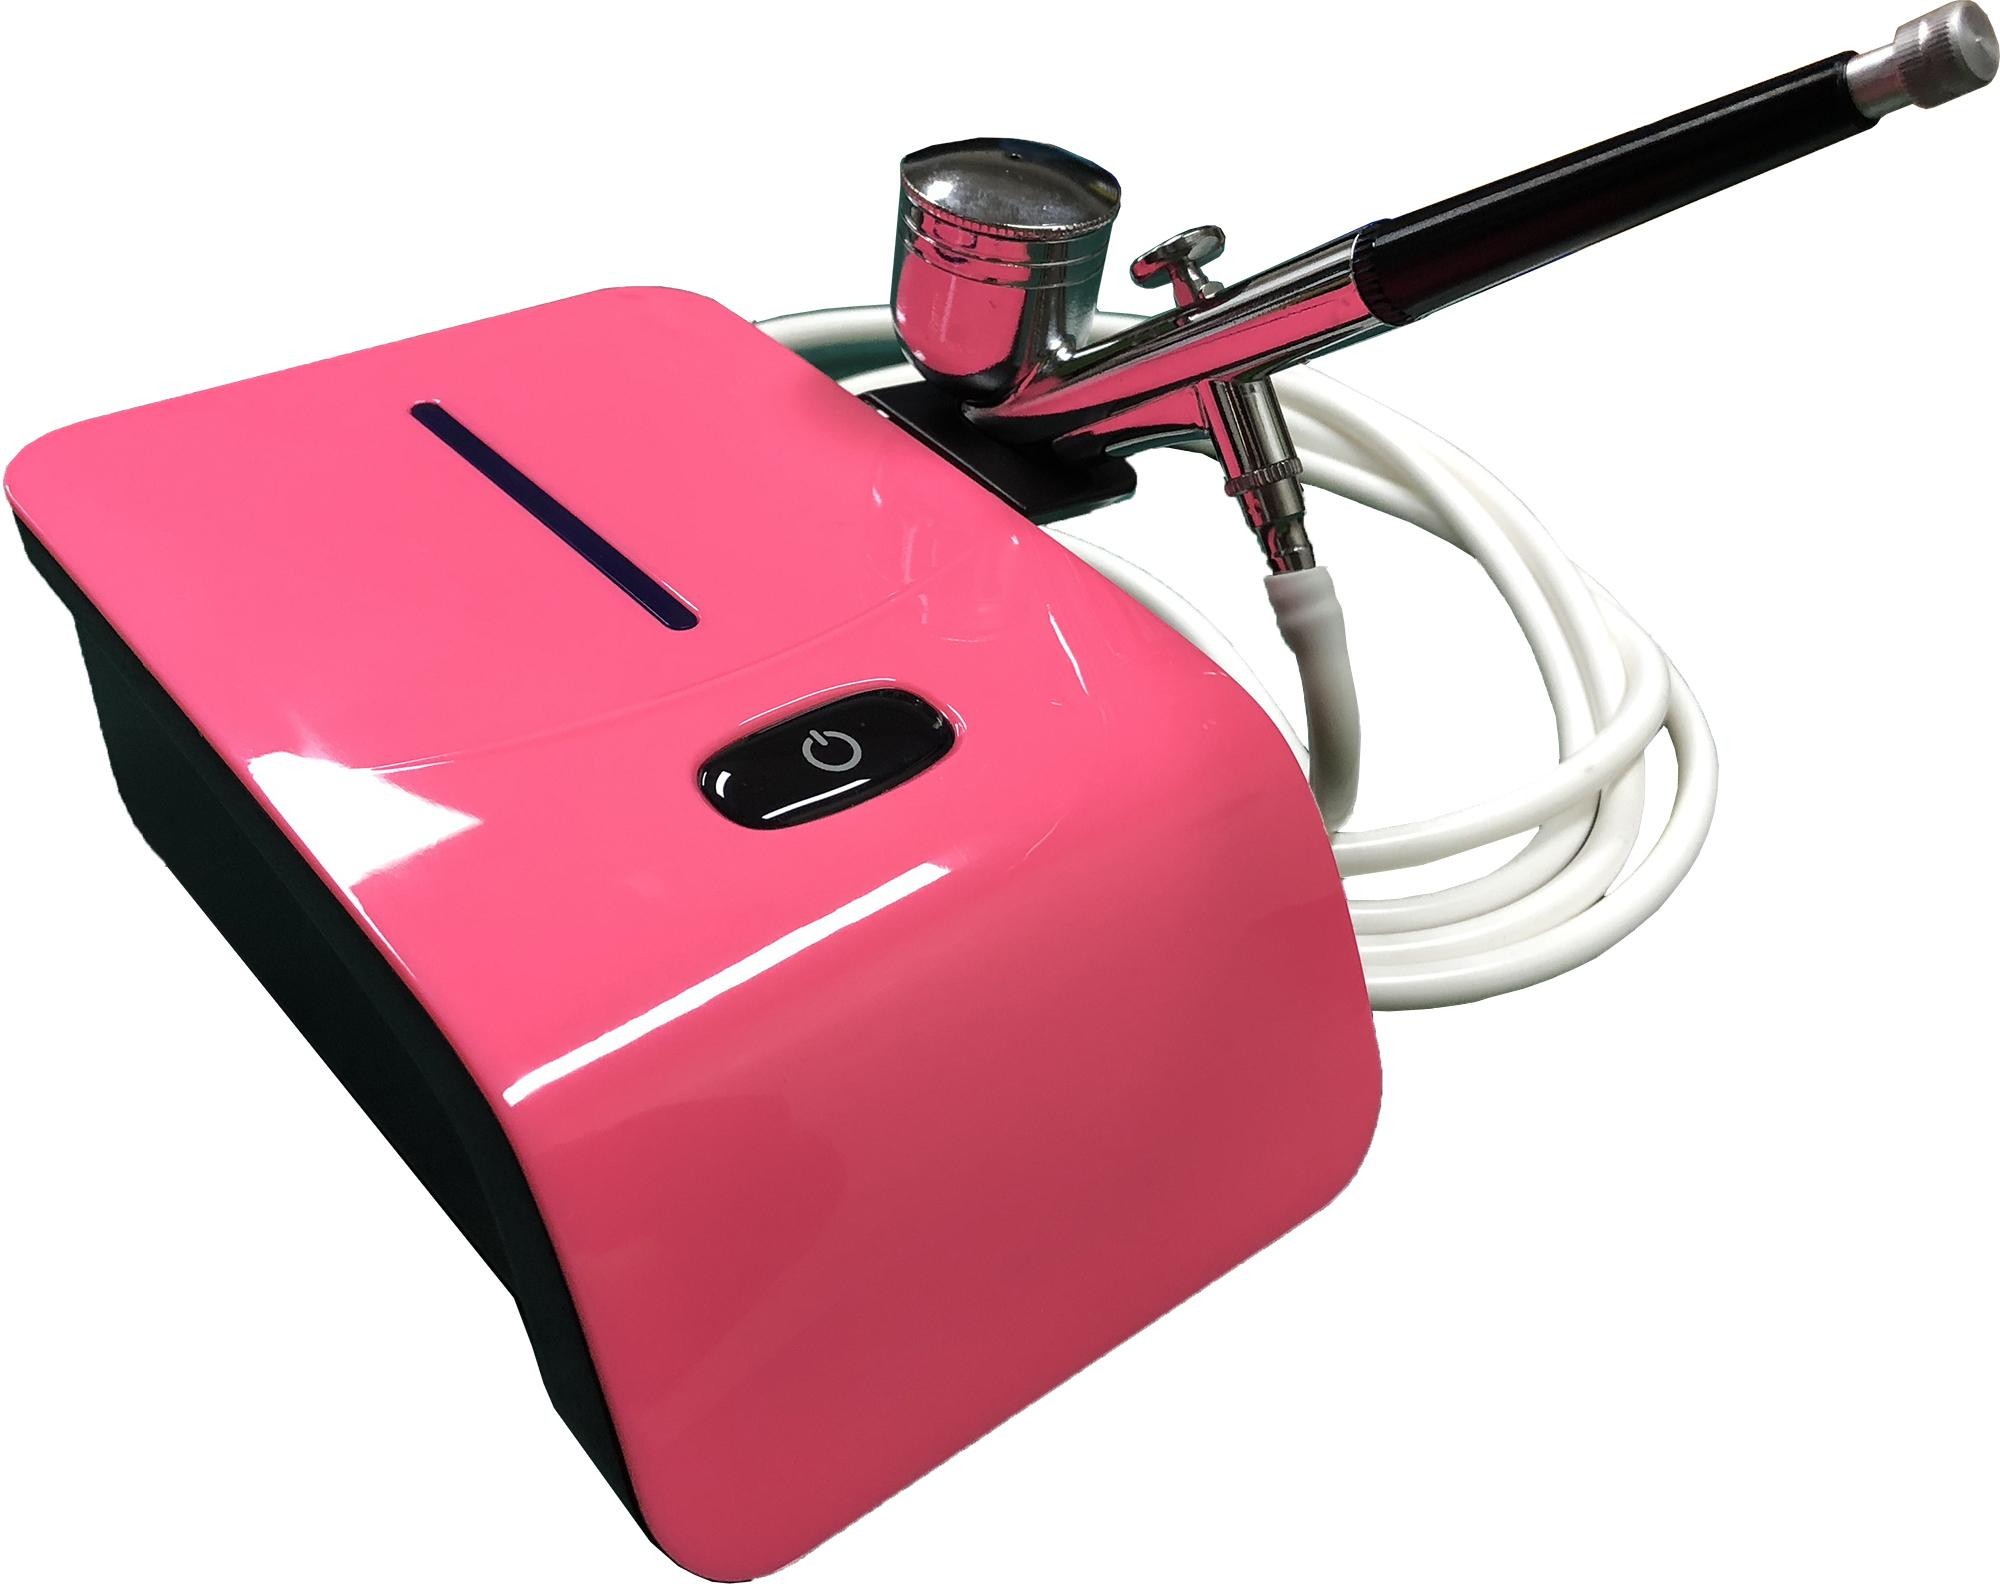 Mini Air Compressor and Airbrush Set Solid Pink Philippines